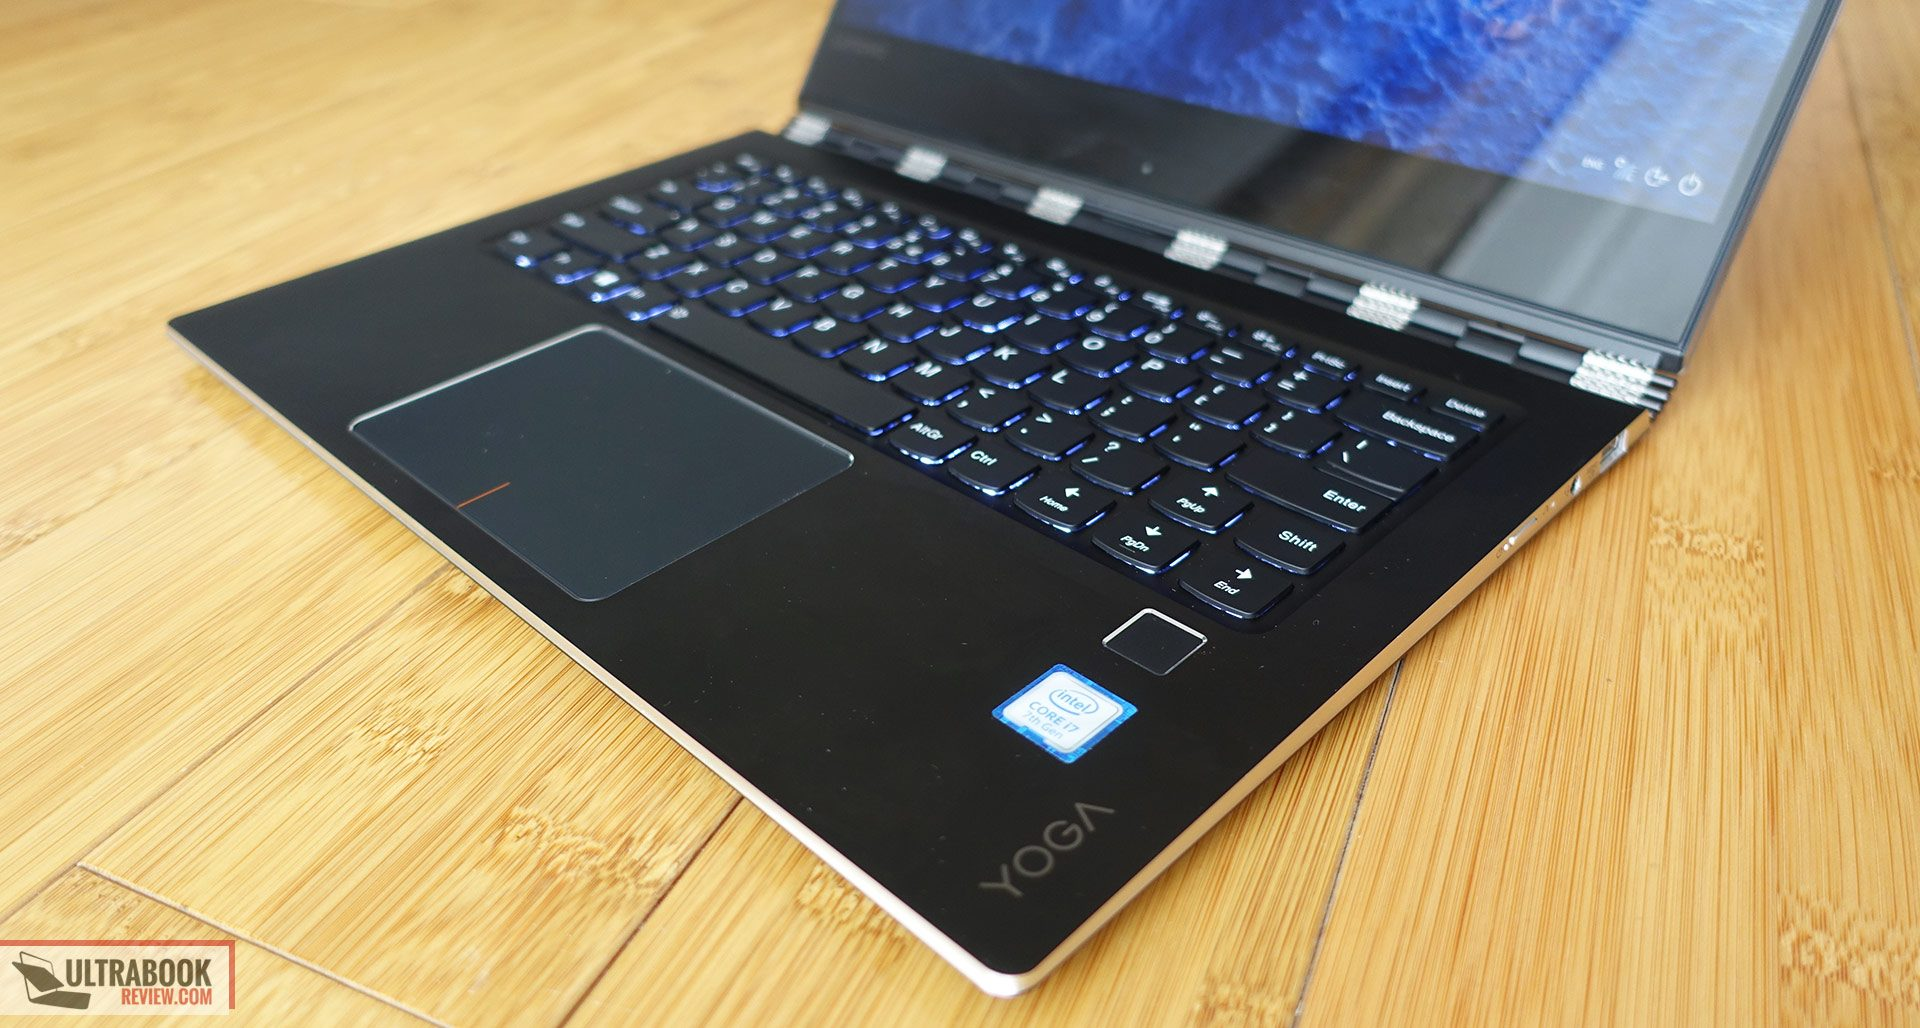 You Should Know That The Yoga 910 Is A Little Bigger And Heavier Than Other Premium Convertibles Like HP Spectre X360 Or Asus Zenbook Flip S